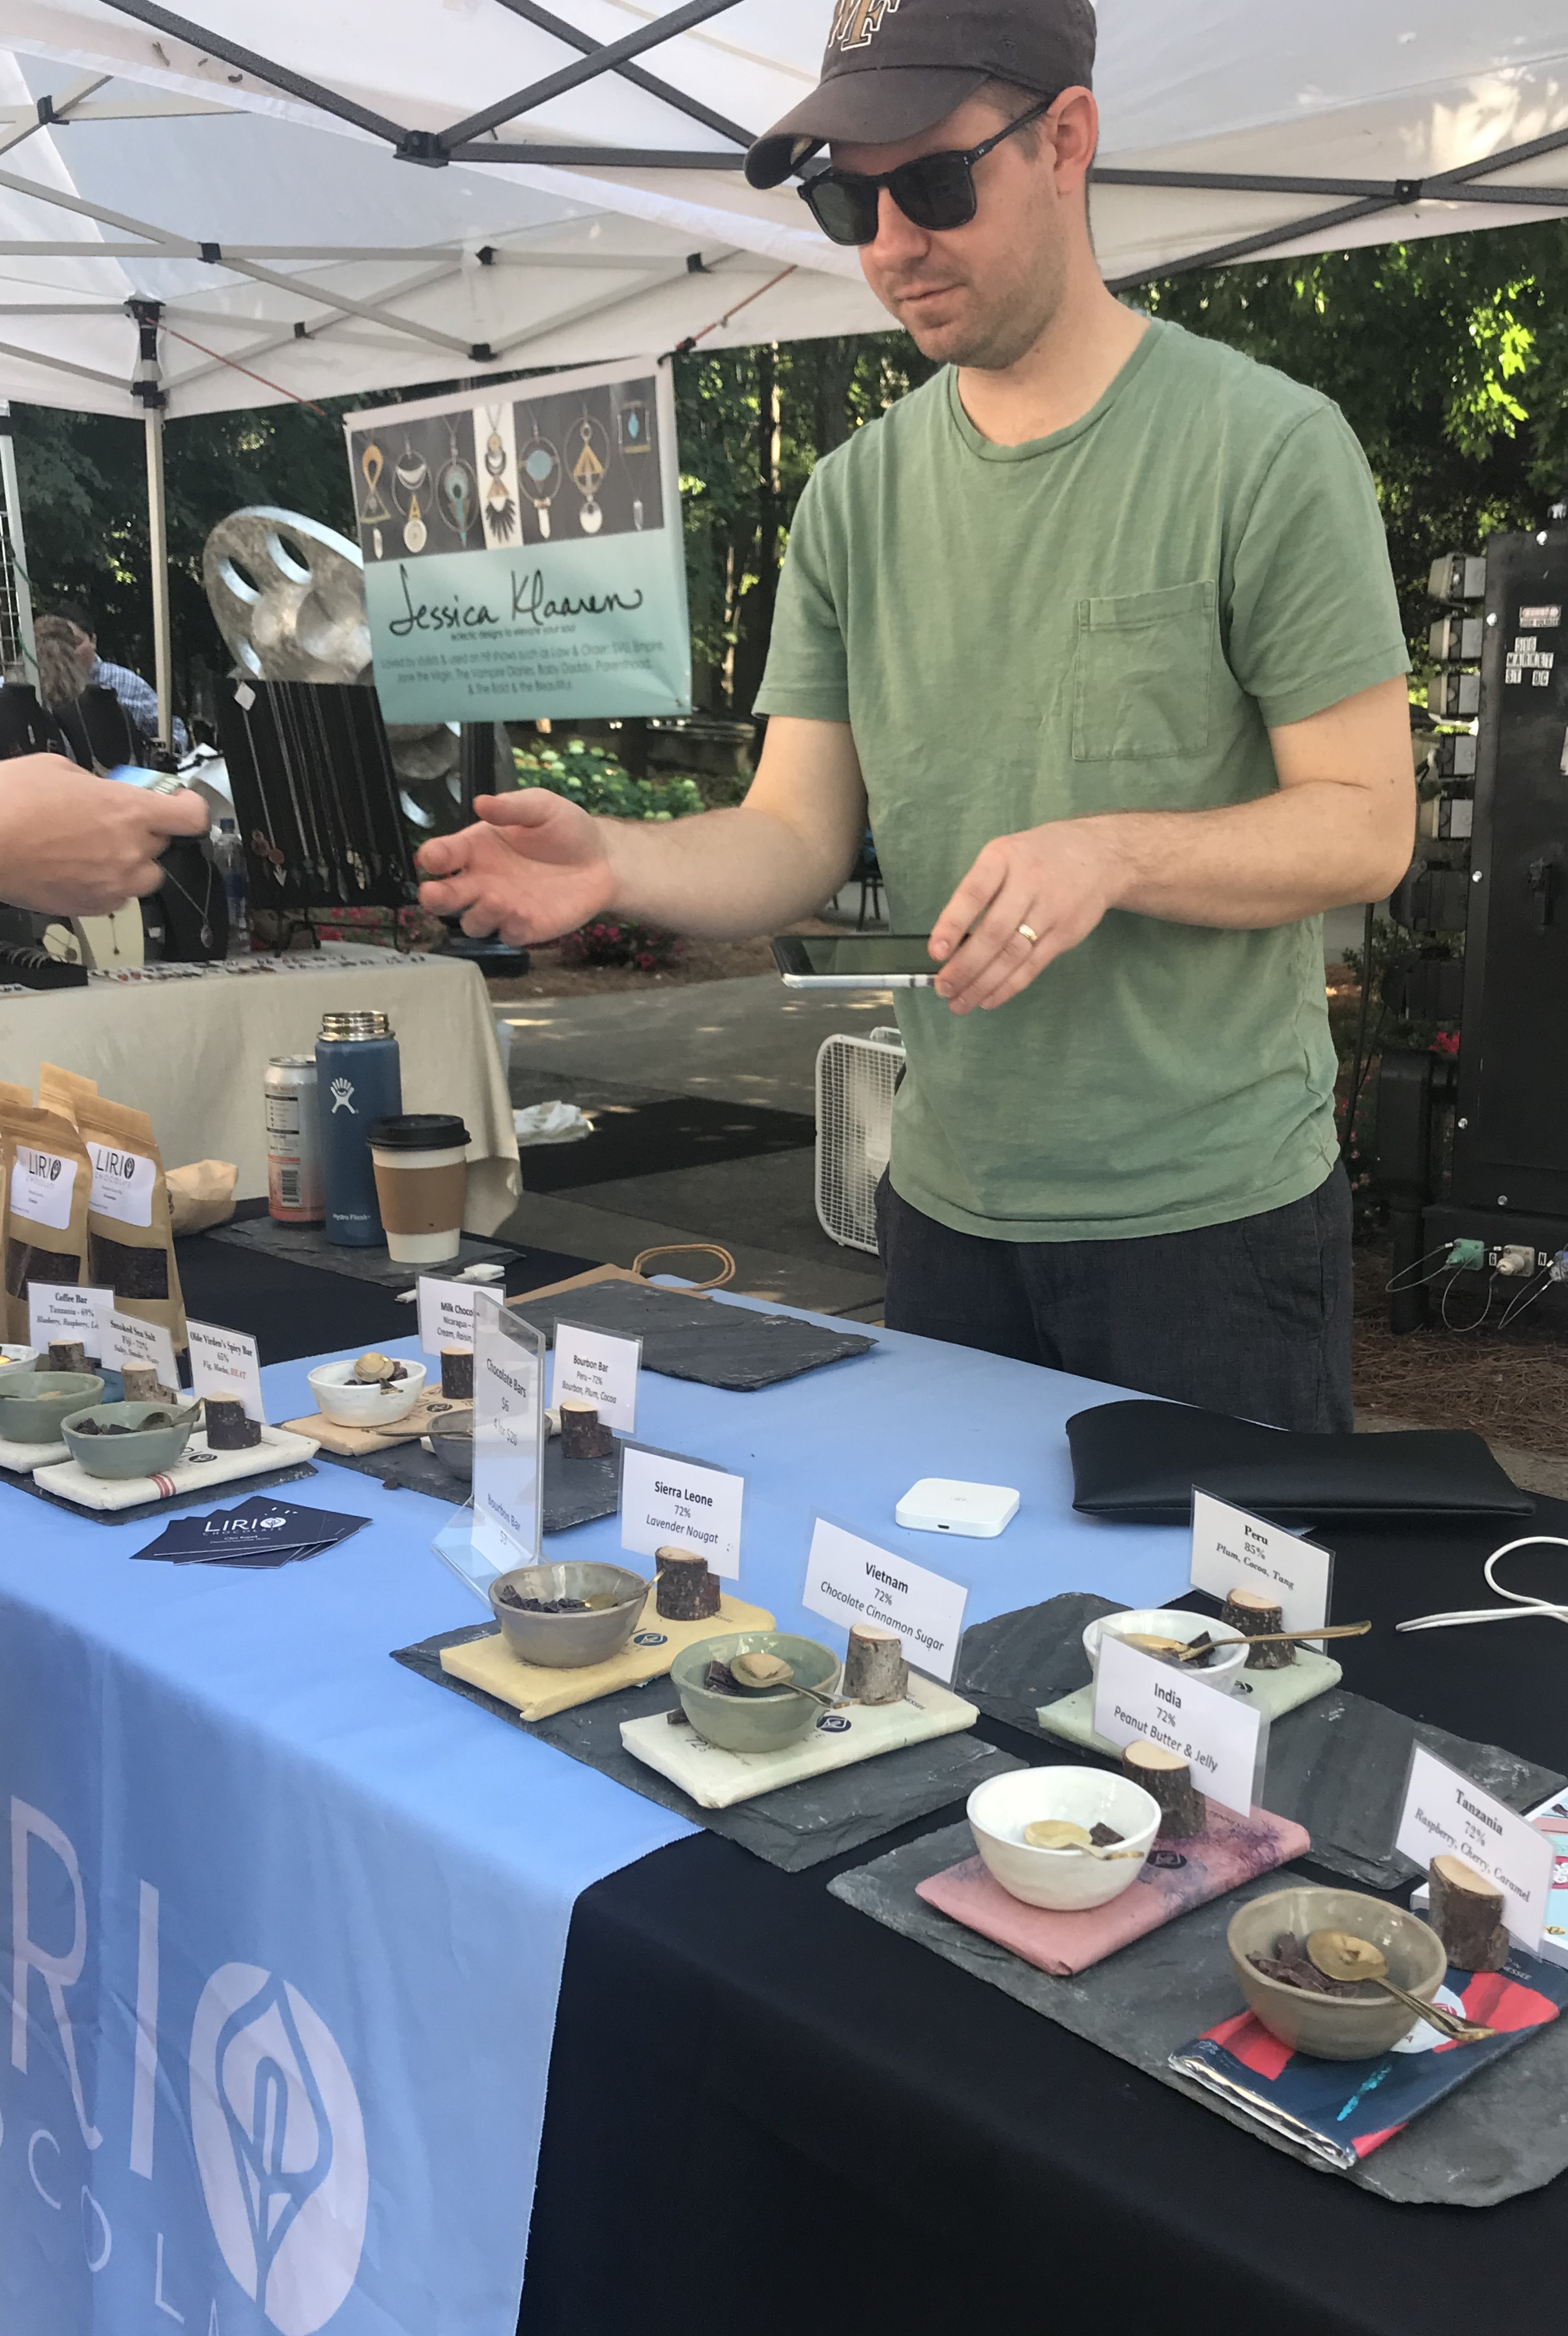 Chris Kopek transacts a sale at his Lirio Chocolate booth